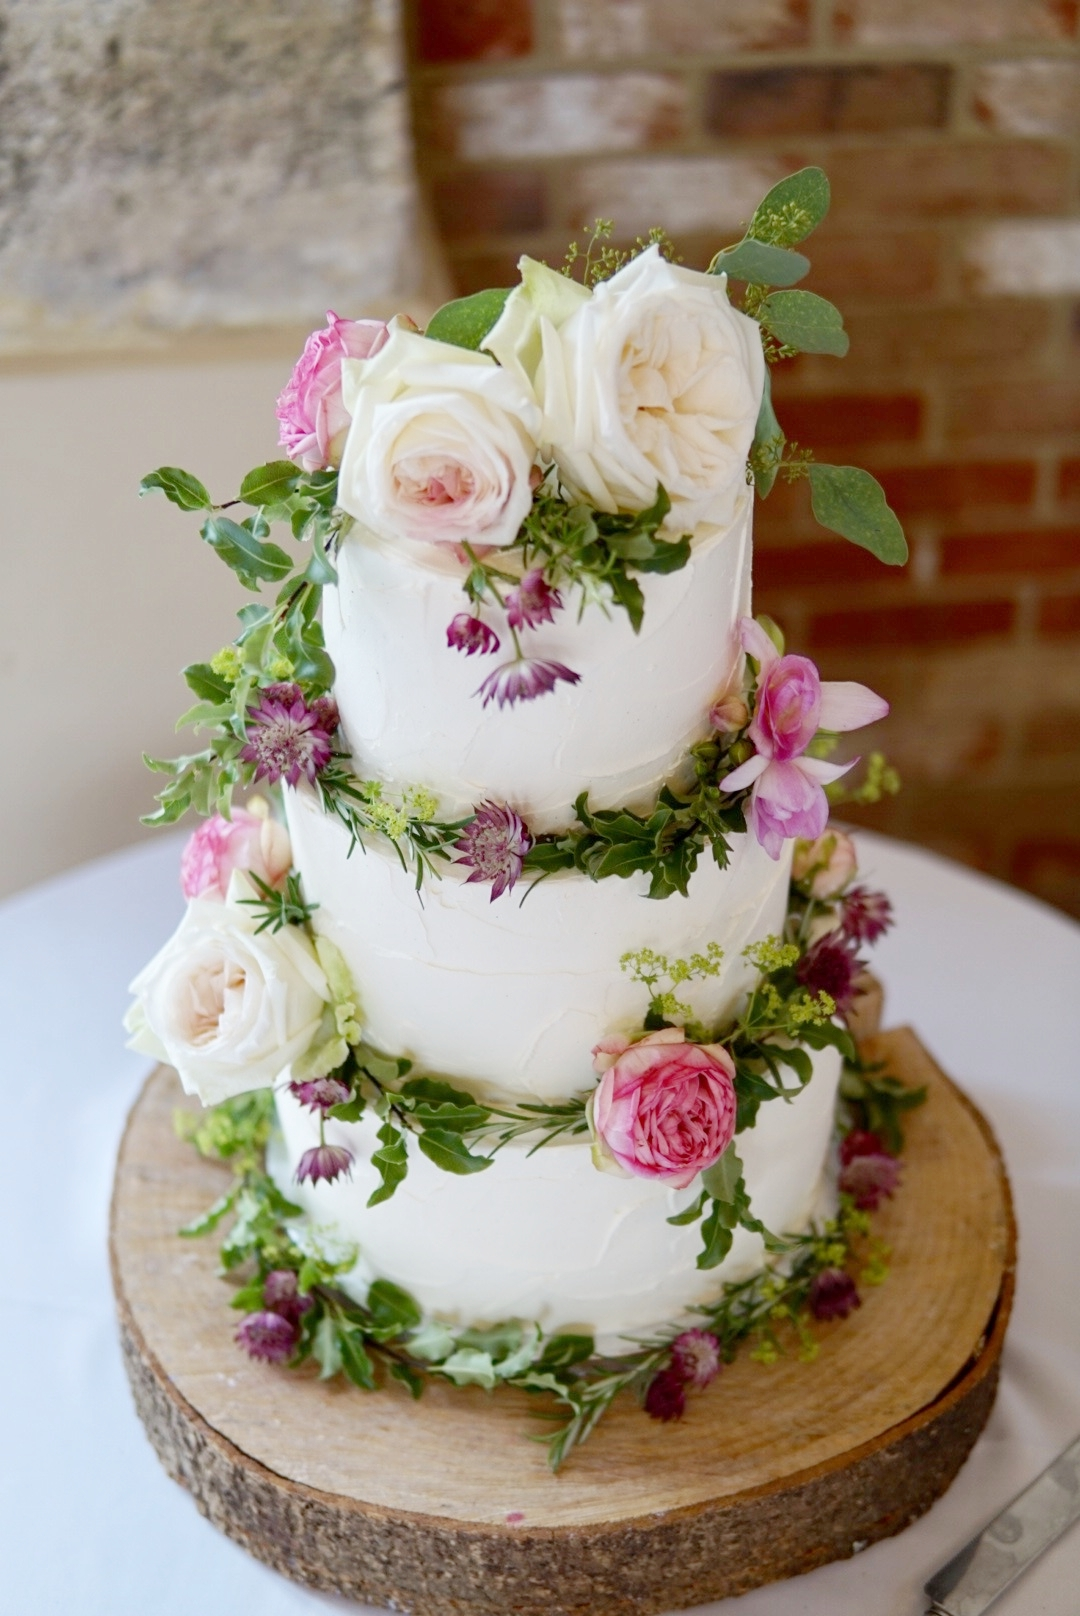 3 Tier Textured Buttercream Wedding Cake with fresh florals and foliage.